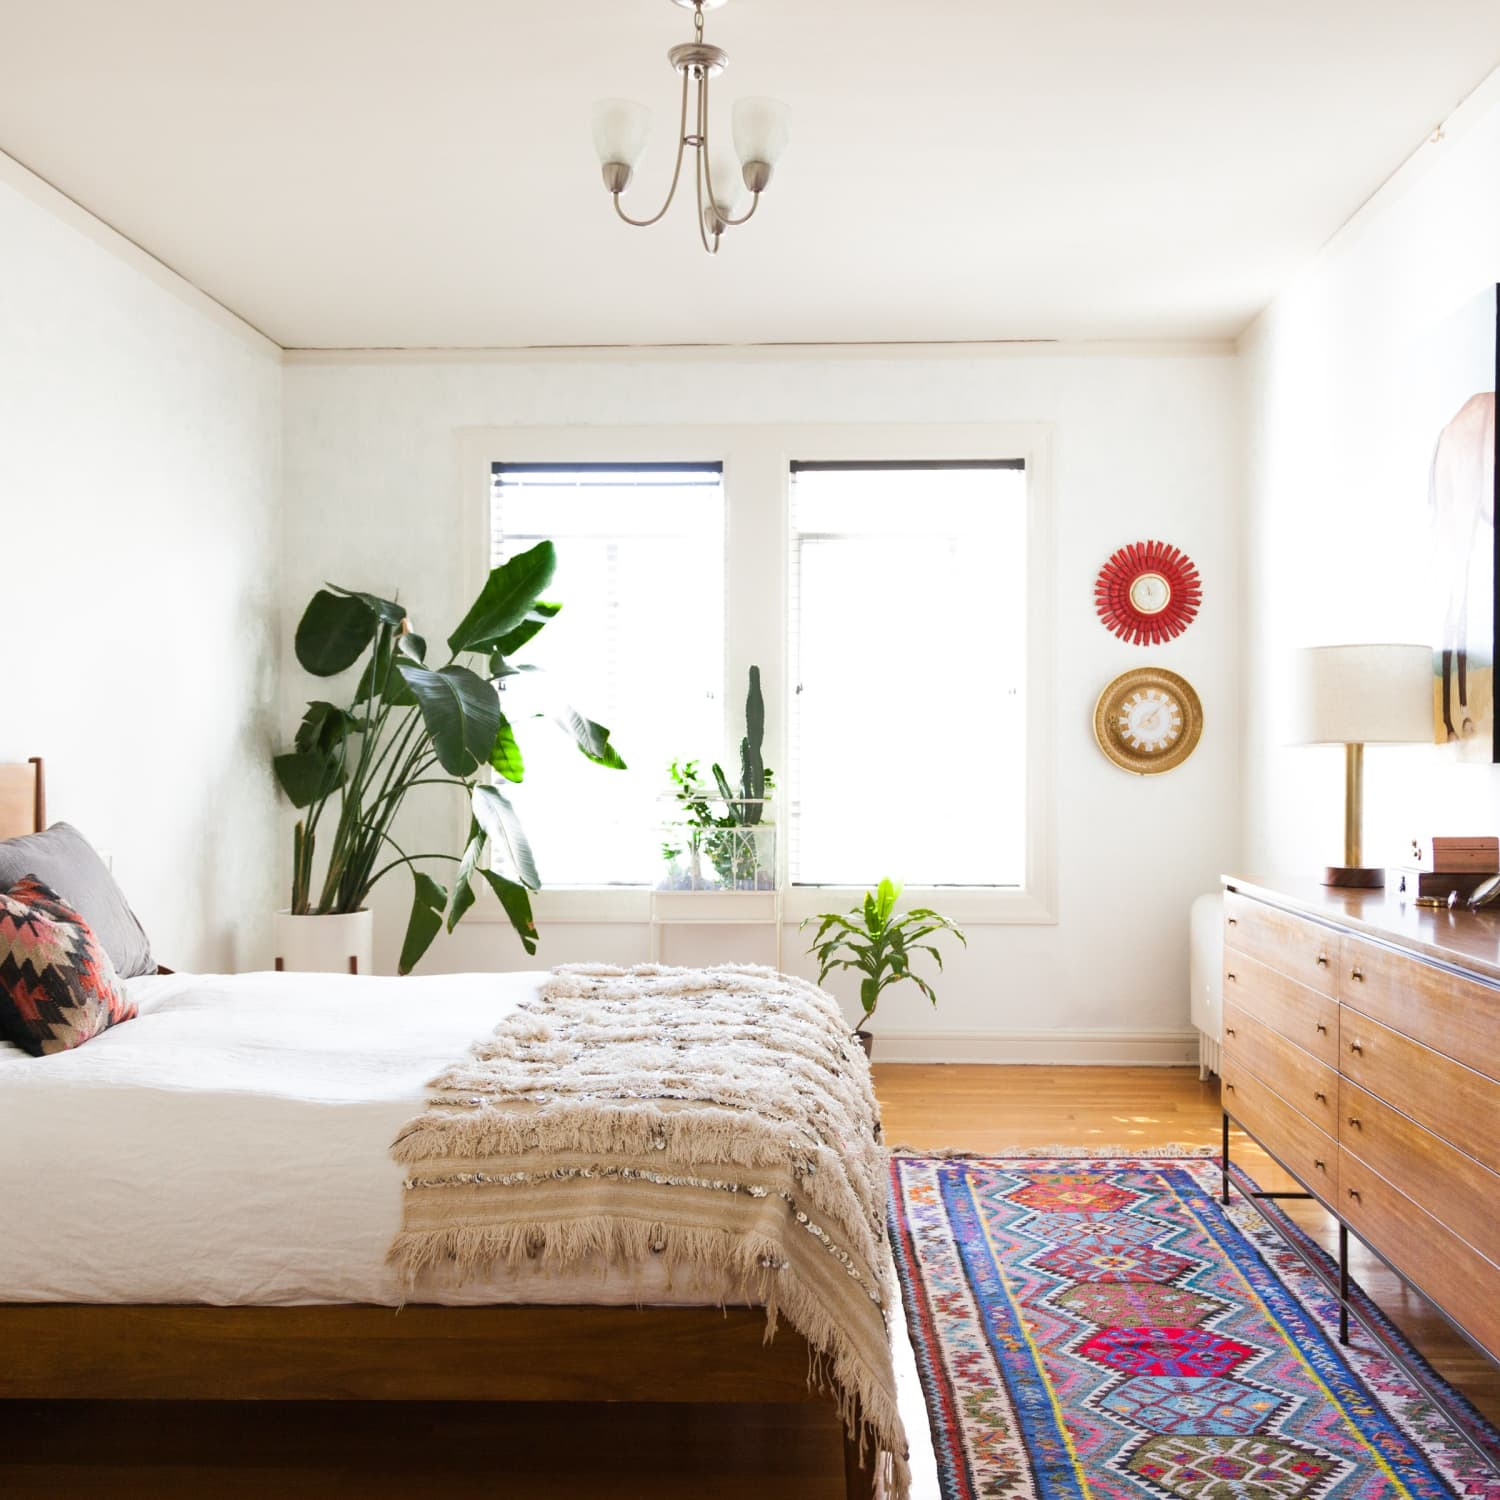 Common Bedroom Design Mistakes We Should Stop Making  Apartment